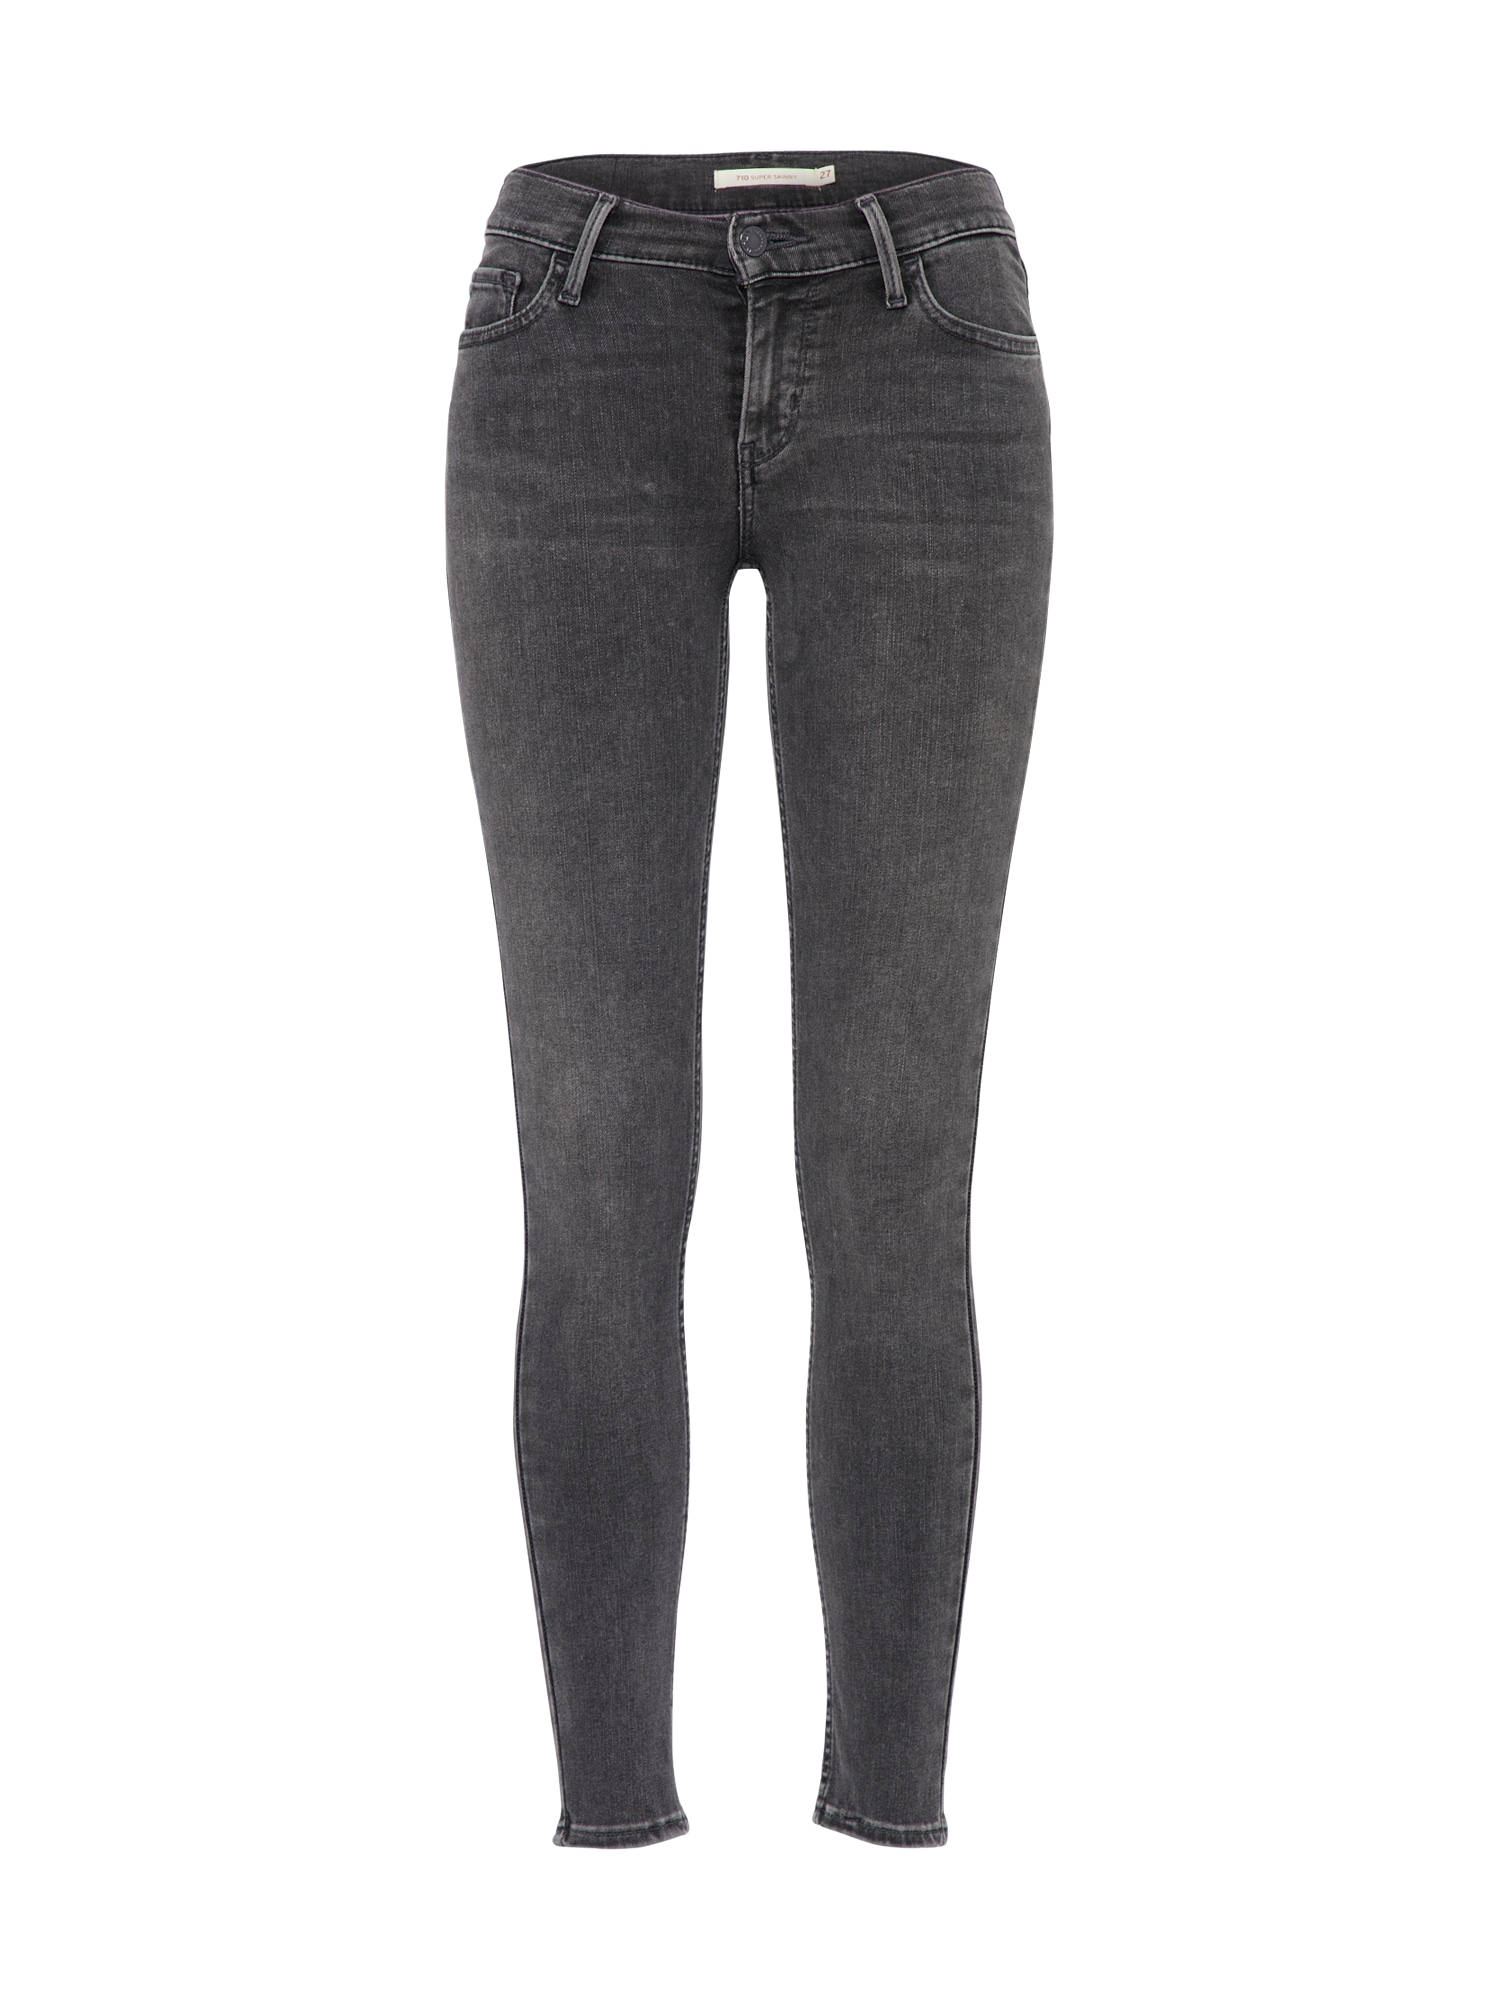 LEVI'S Dames Jeans 710 Innovation Super Skinny grey denim